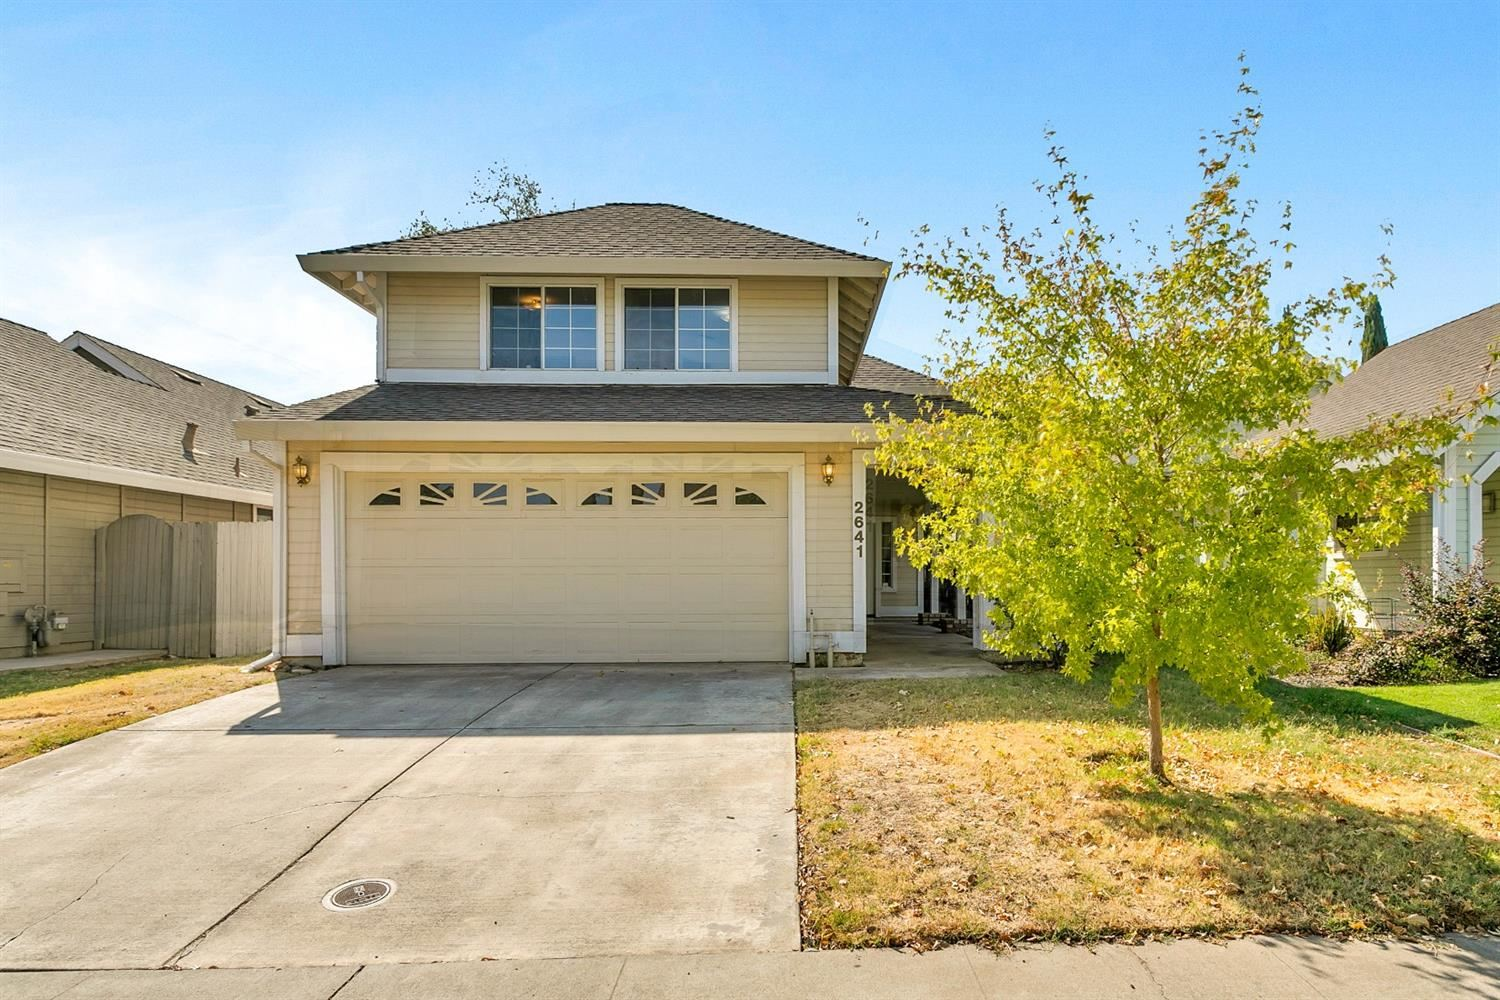 Photo of 2641 Stamp Mill Court, Carmichael, CA 95608 (MLS # 221092401)